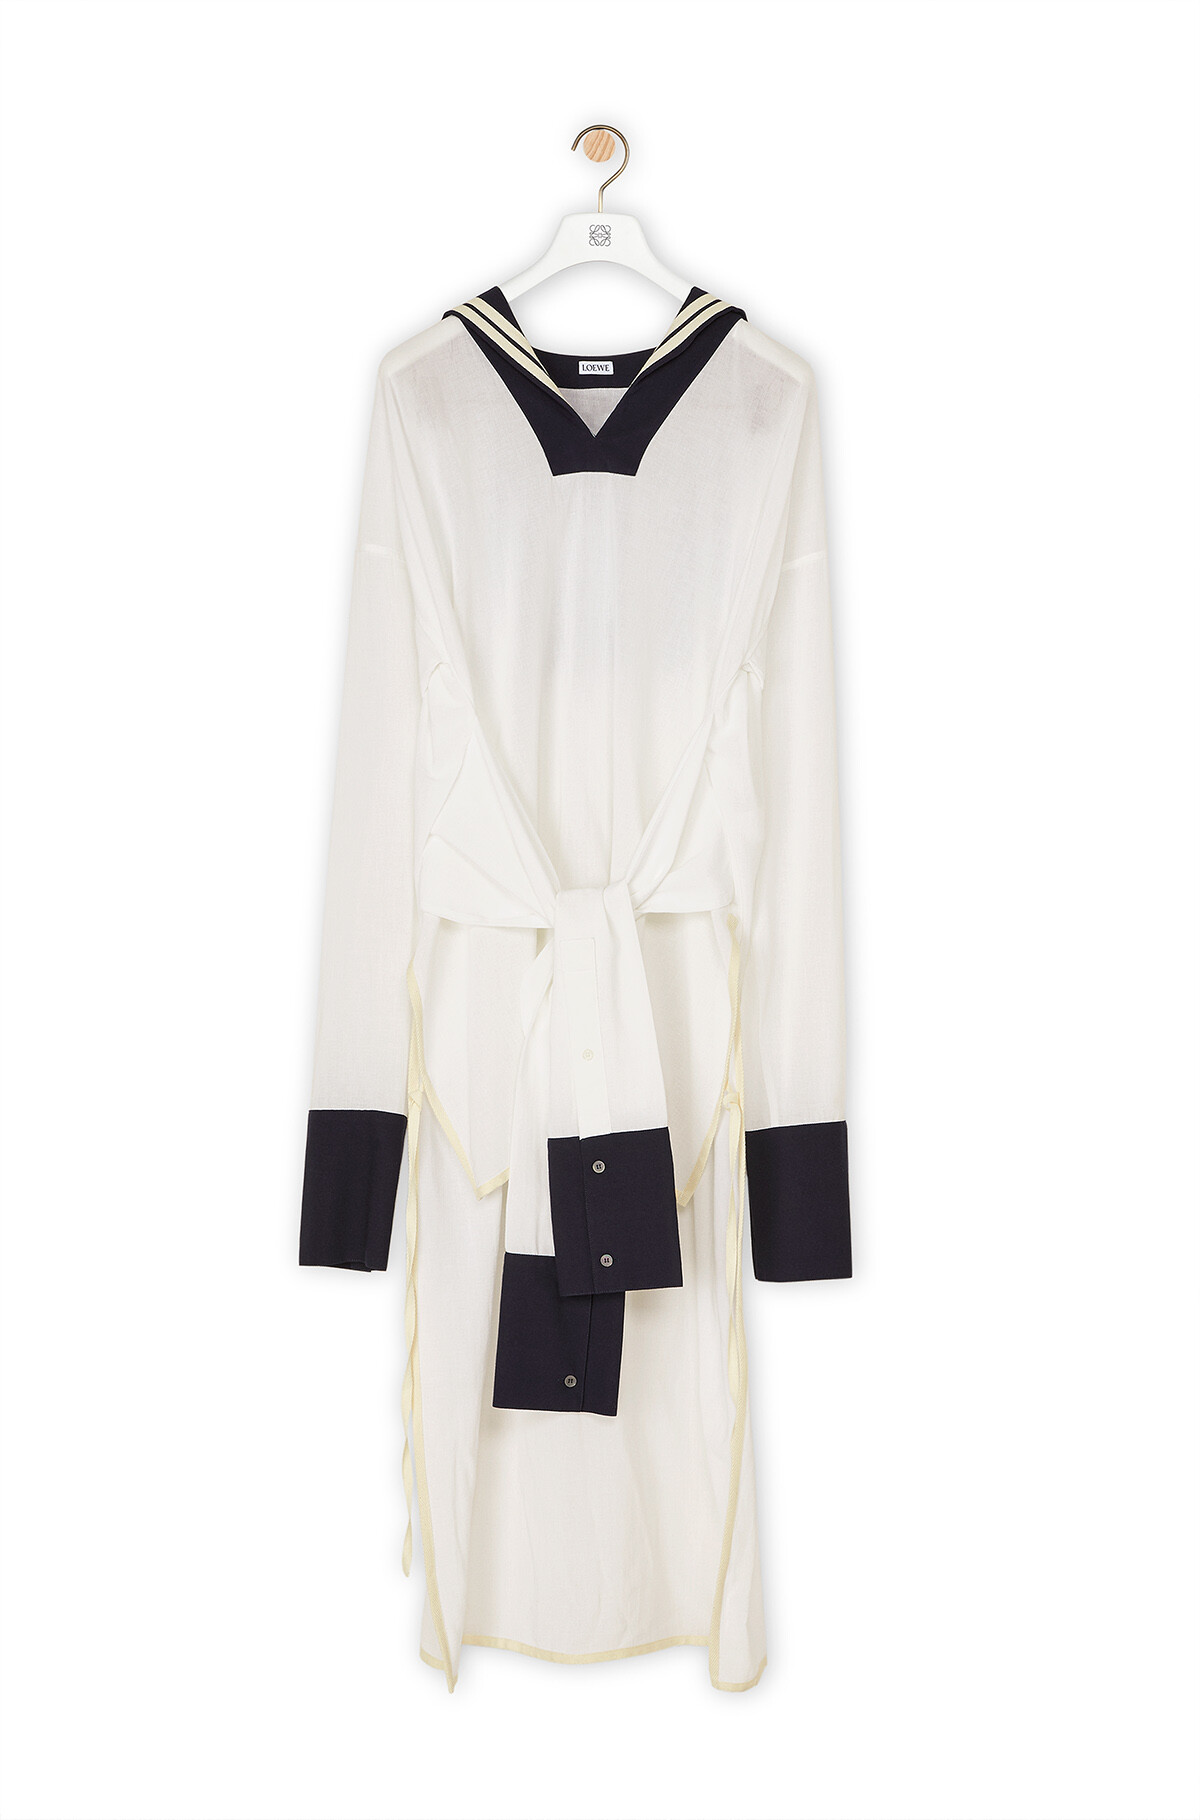 LOEWE Sailor Tunic White/Navy Blue front